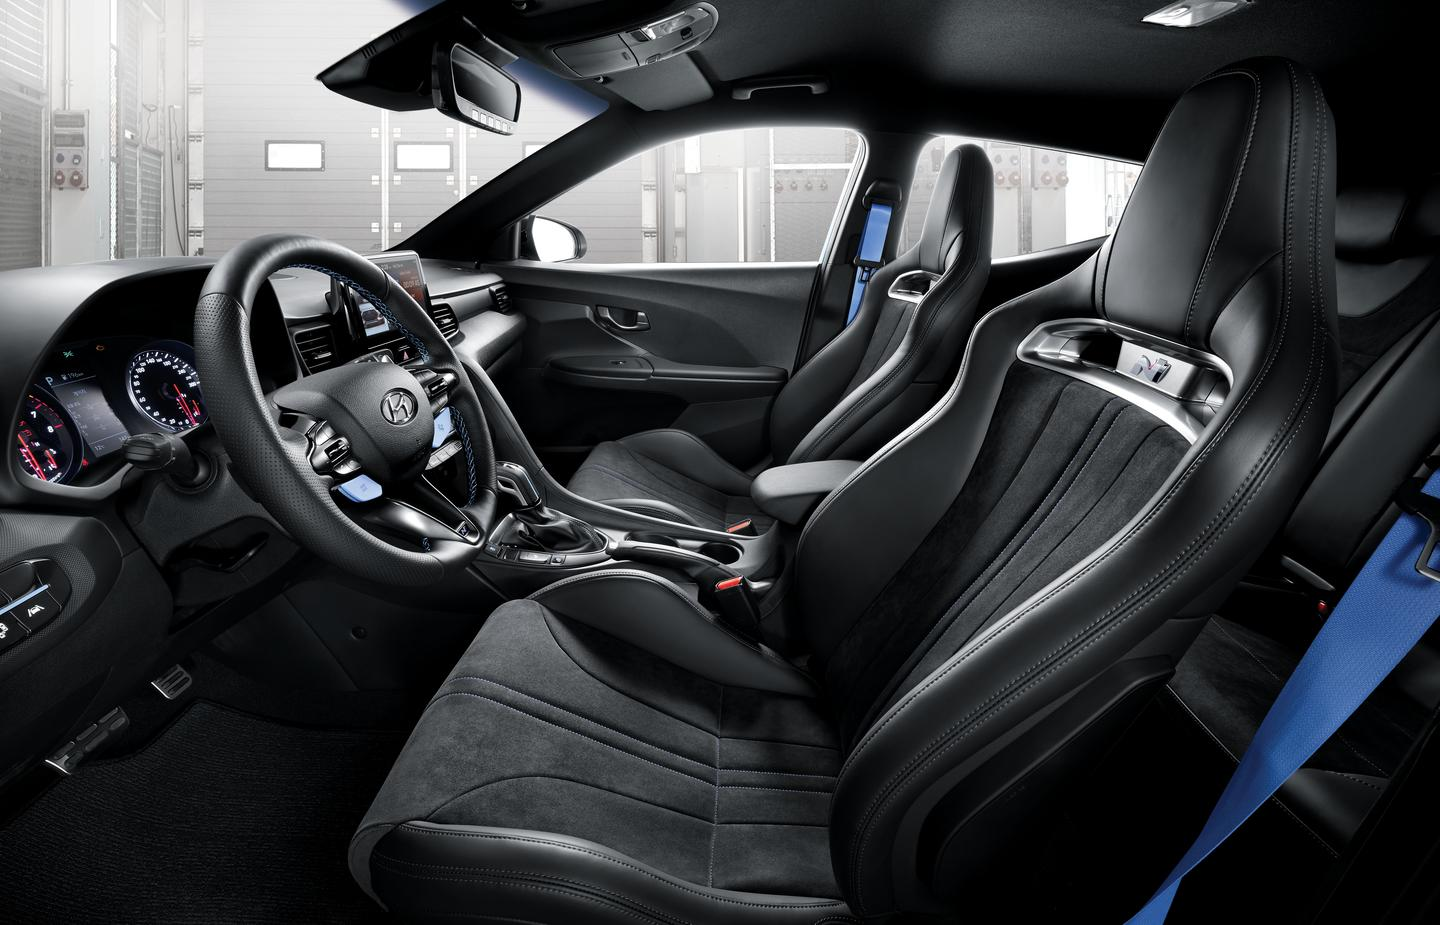 Lightweight bucket seats covered in Alcantara are a neat new option